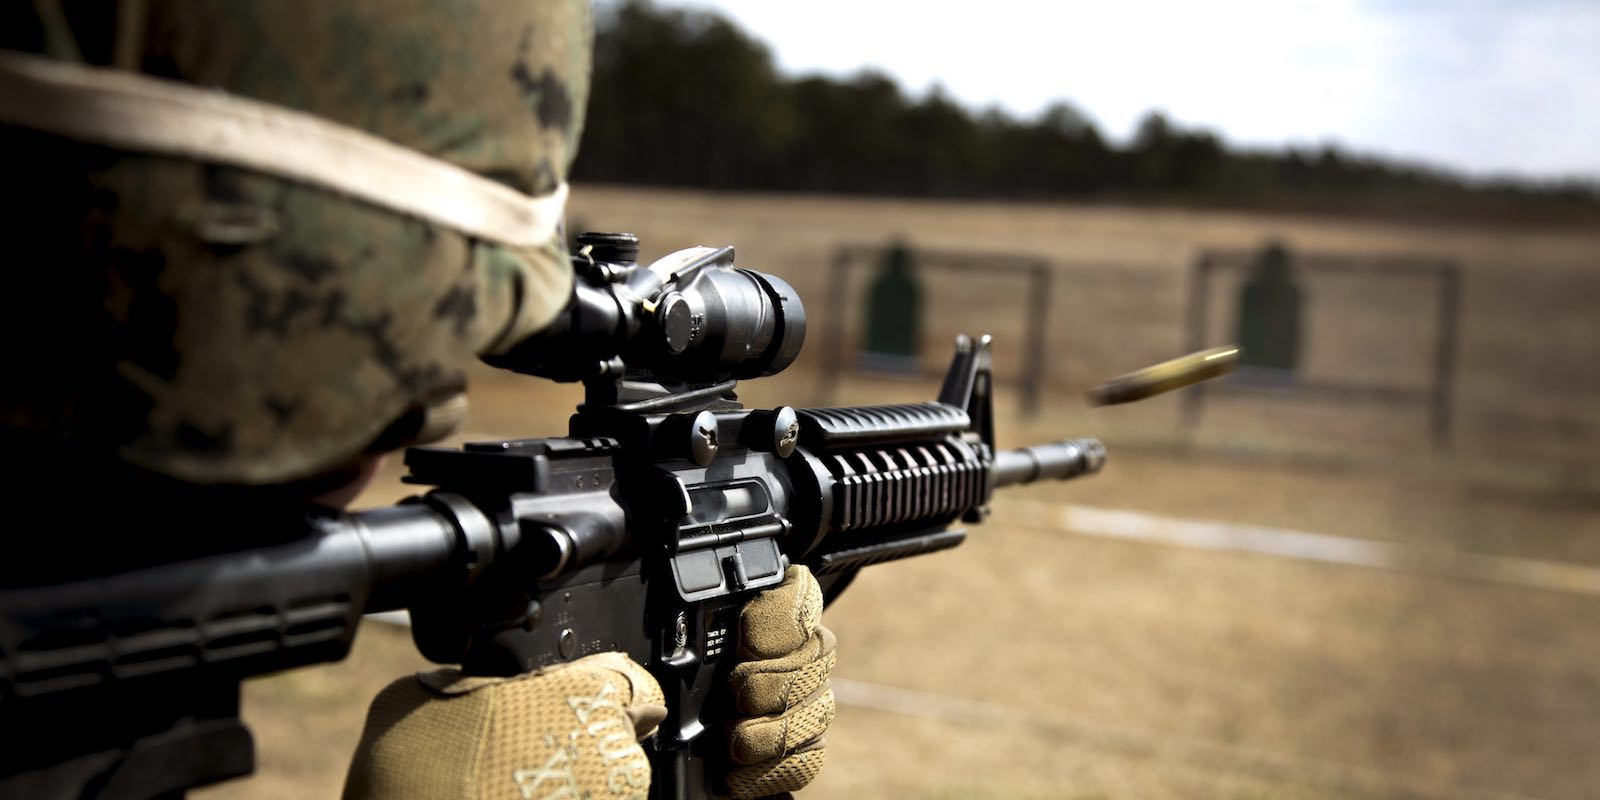 Target practice for the US military 22nd Marine Expeditionary Unit's female engagement team (Marines/Flickr)